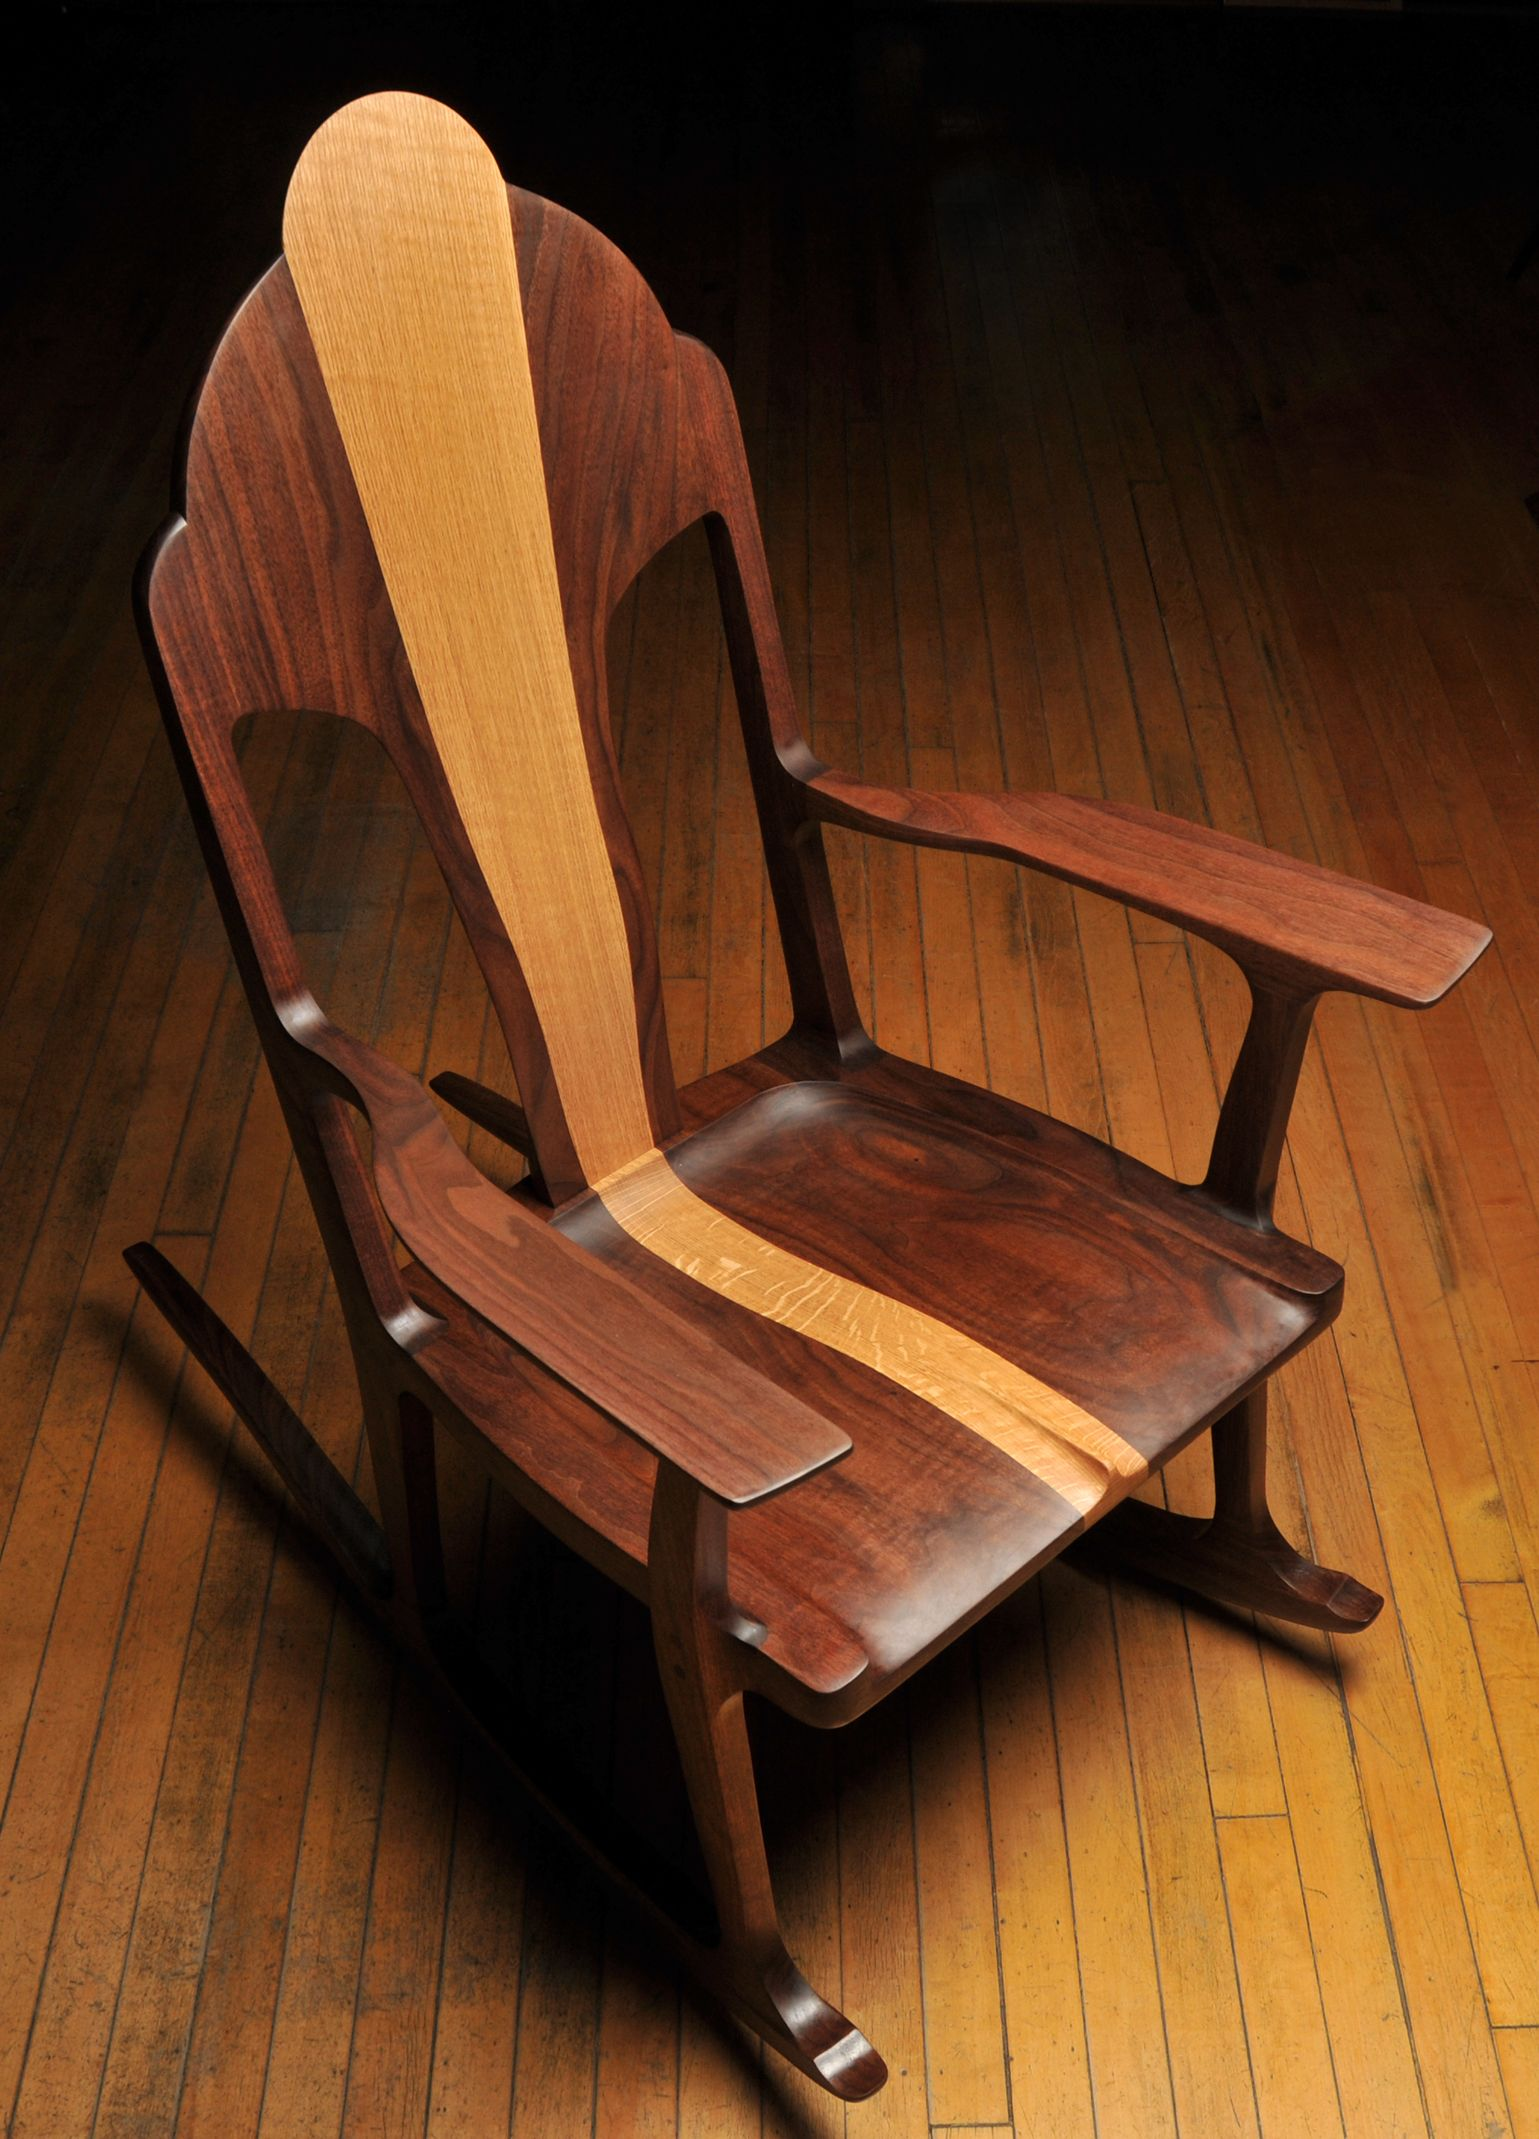 Newport Rocking Chair Antique Wooden Chairs Pictures Let 39s Rock Reader Gallery Fine Woodworking Art